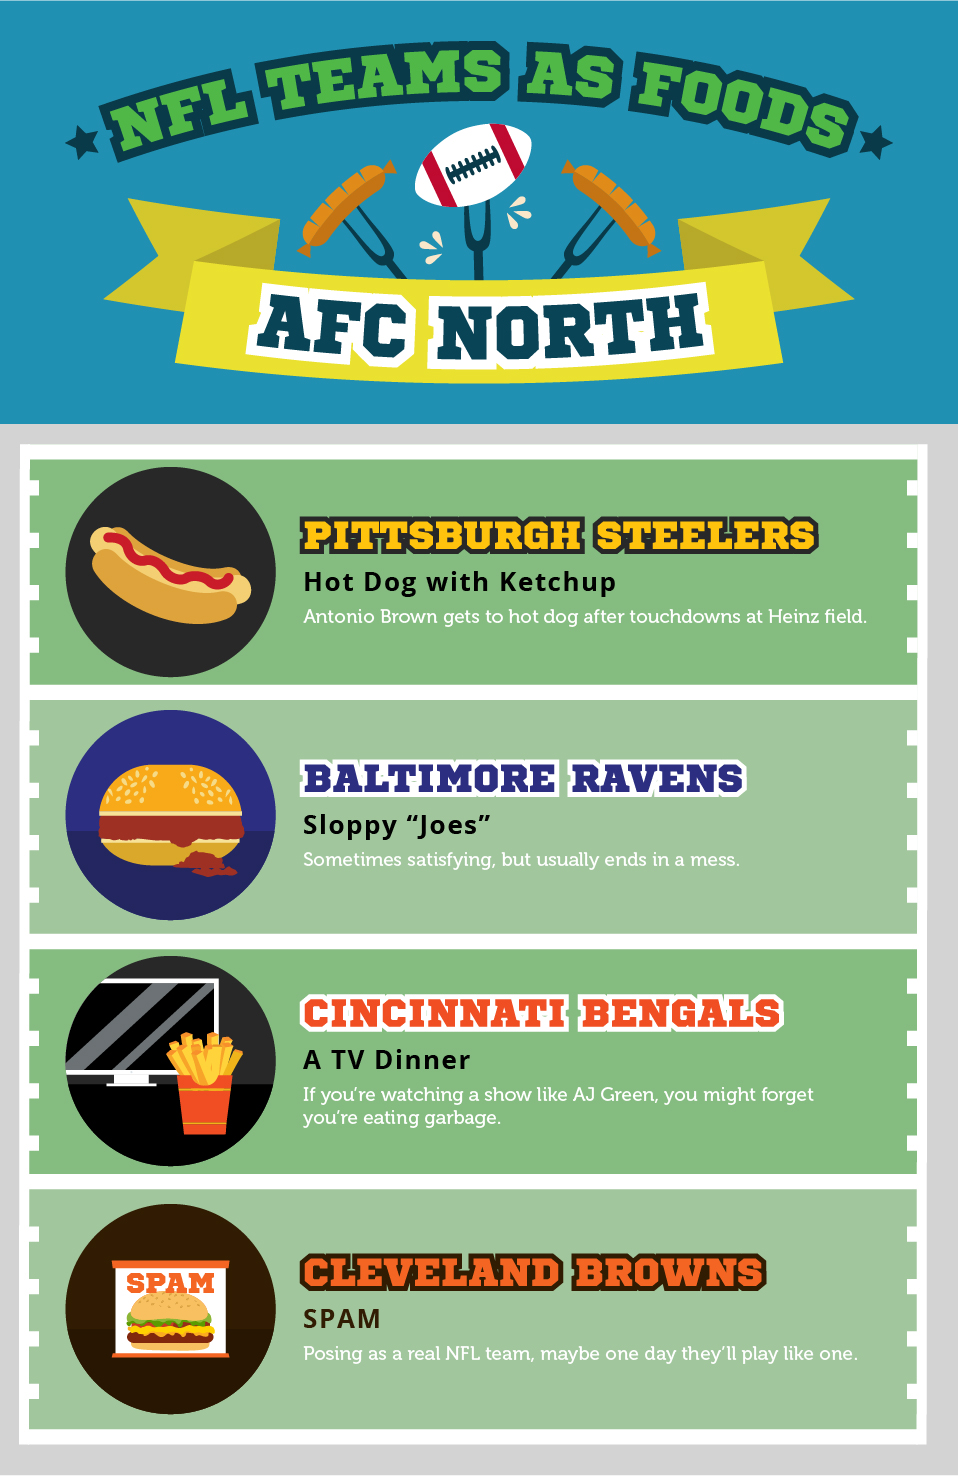 NFL Teams as Food: AFC North